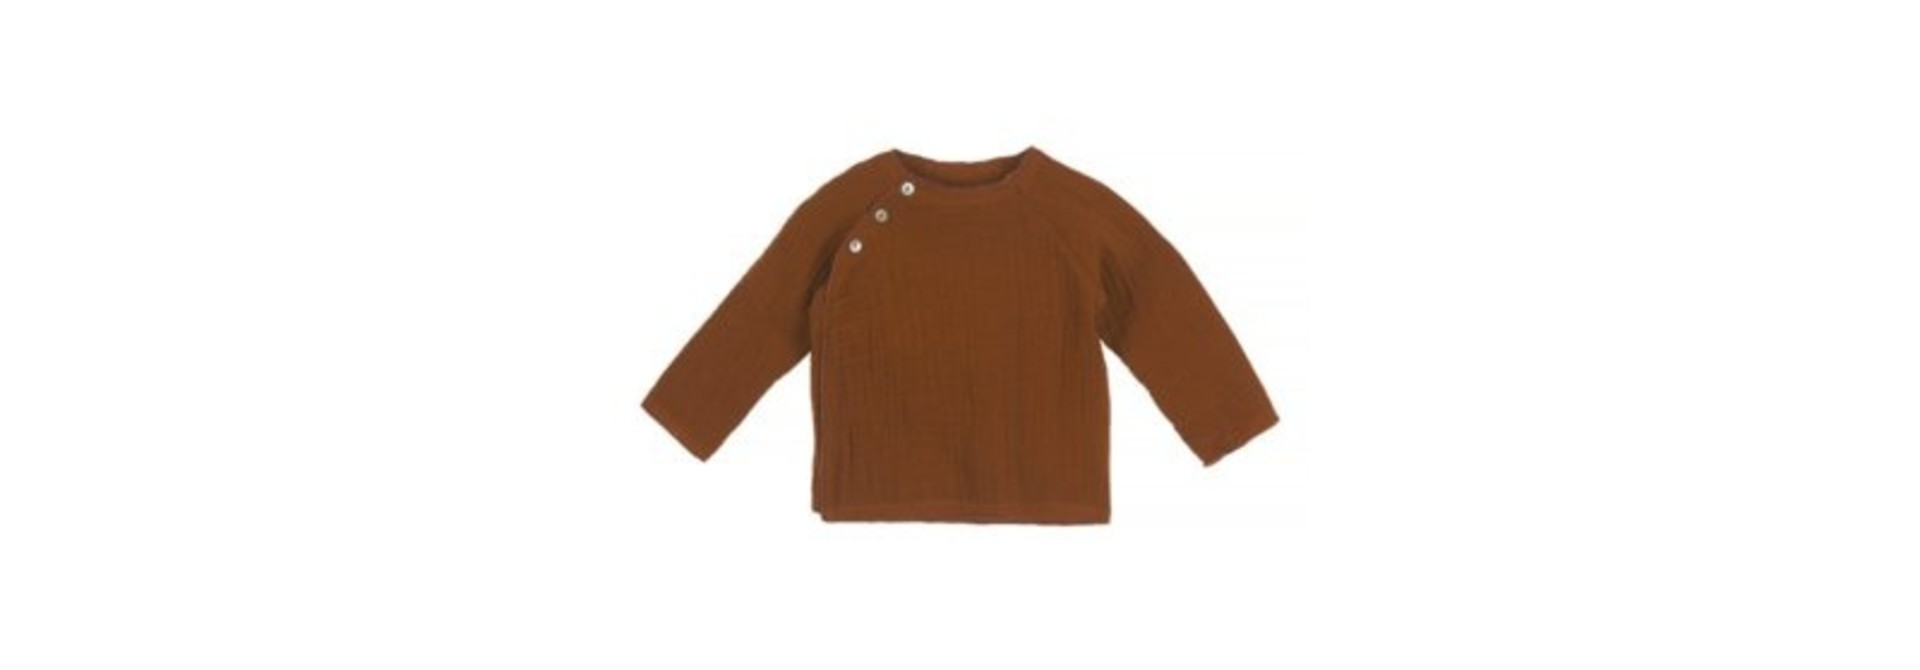 Baby mousseline top - caramel